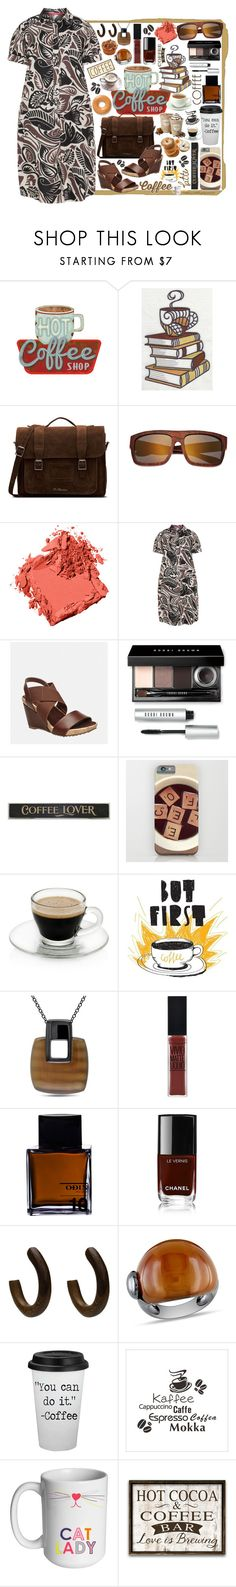 """""""Hot Coffee Shop!"""" by curekitty ❤ liked on Polyvore featuring Coffee Shop, Dr. Martens, Earth, Bobbi Brown Cosmetics, Marina Rinaldi, Avenue, DutchCrafters, Catherine Catherine Malandrino, Maybelline and Odin"""